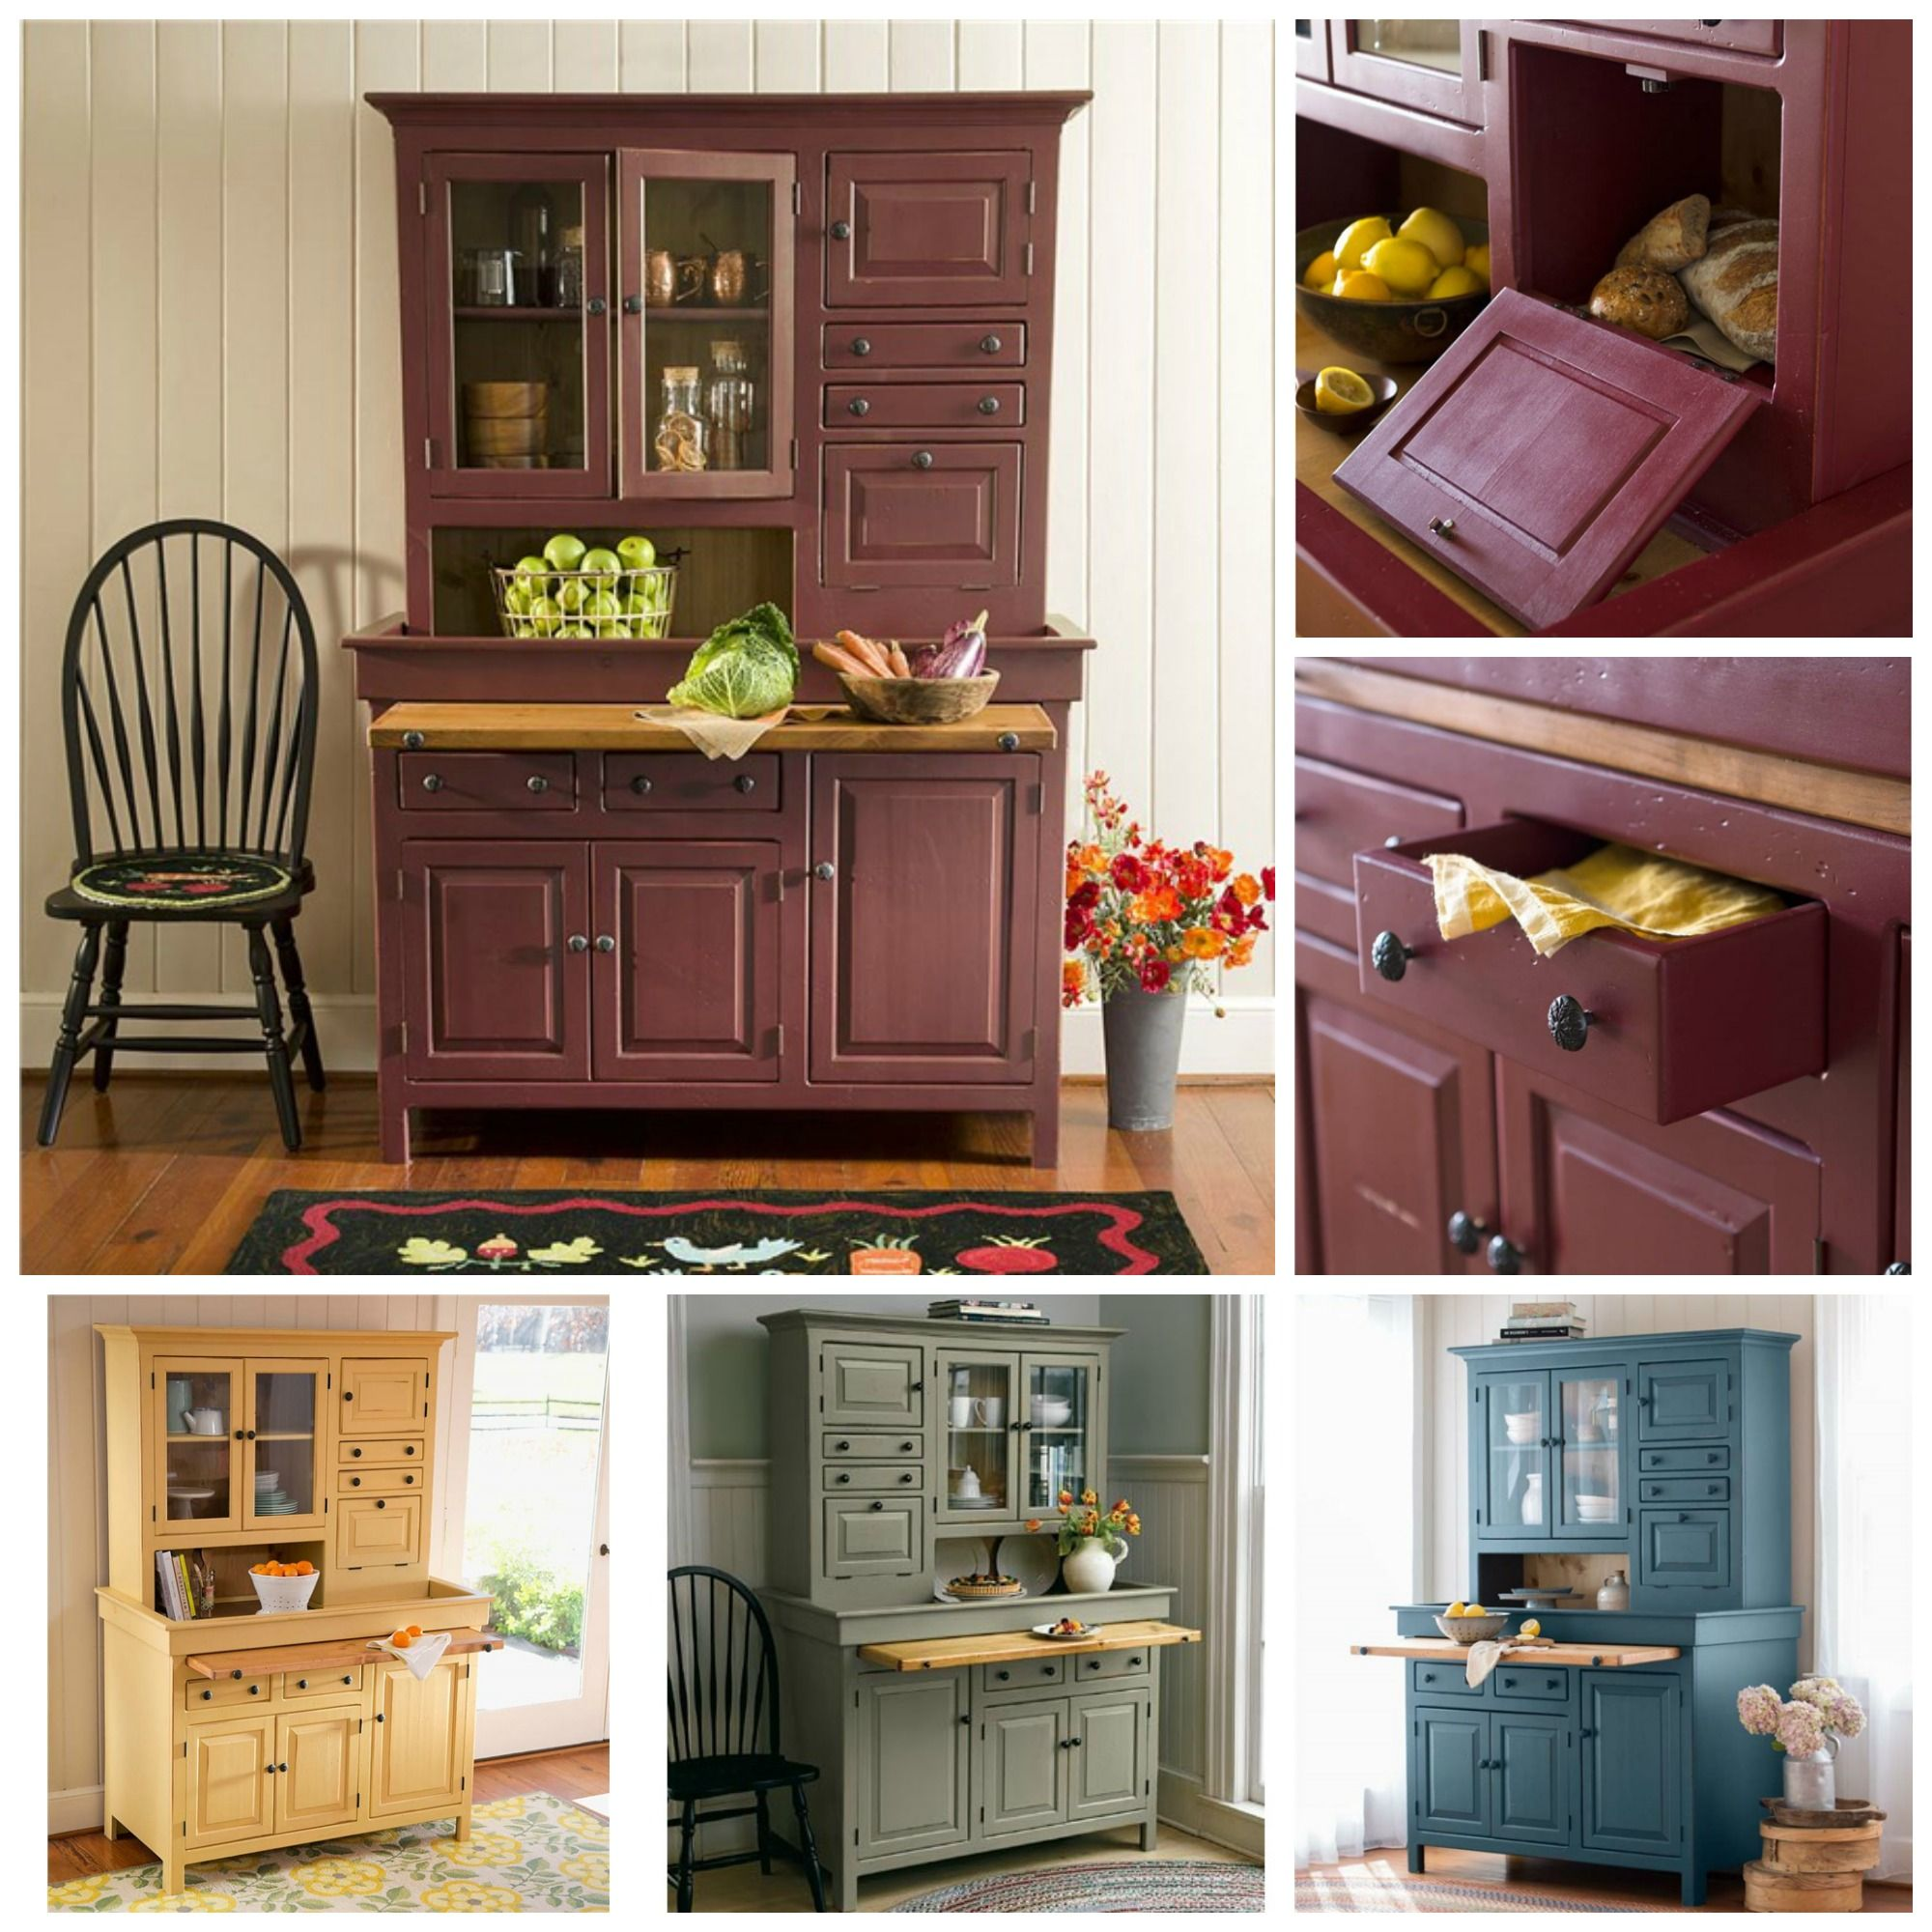 American Made Conestoga Cupboard Is Handcrafted With Handy Shelves